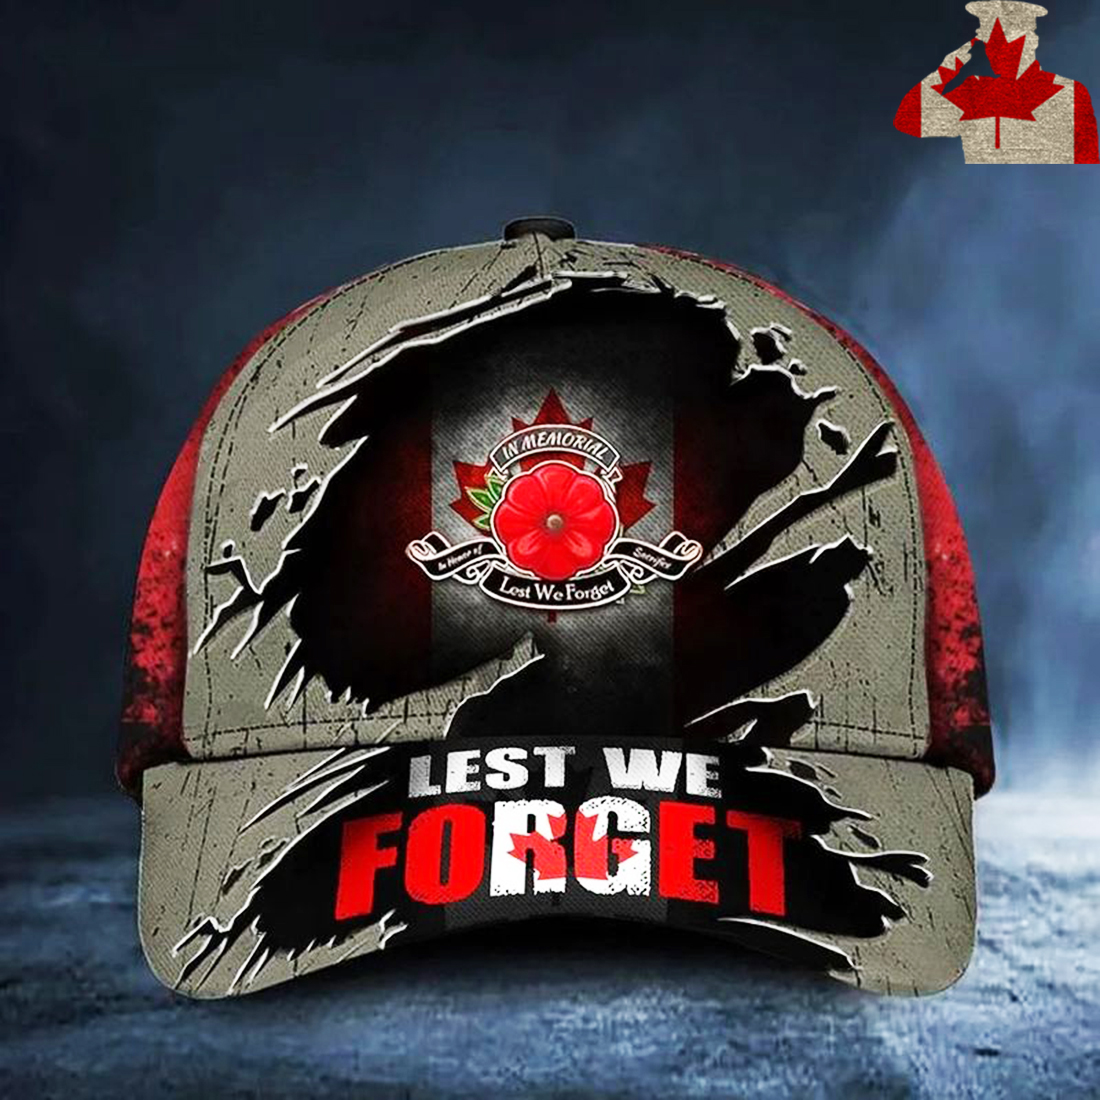 In memorial in honor of sacrifice Lest We Forget Poppy Canada Flag hat